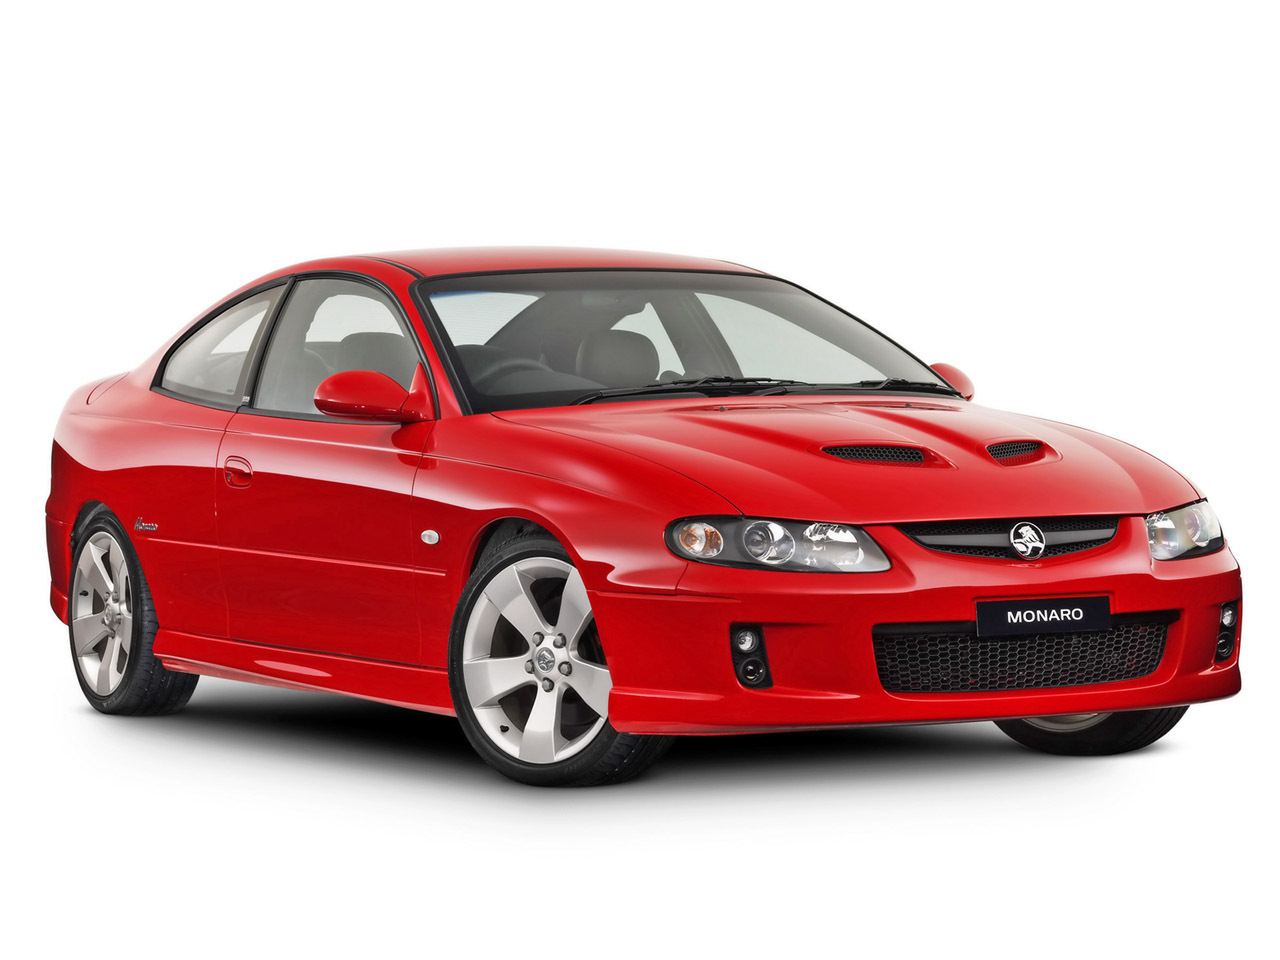 holden monaro wallpaper #9